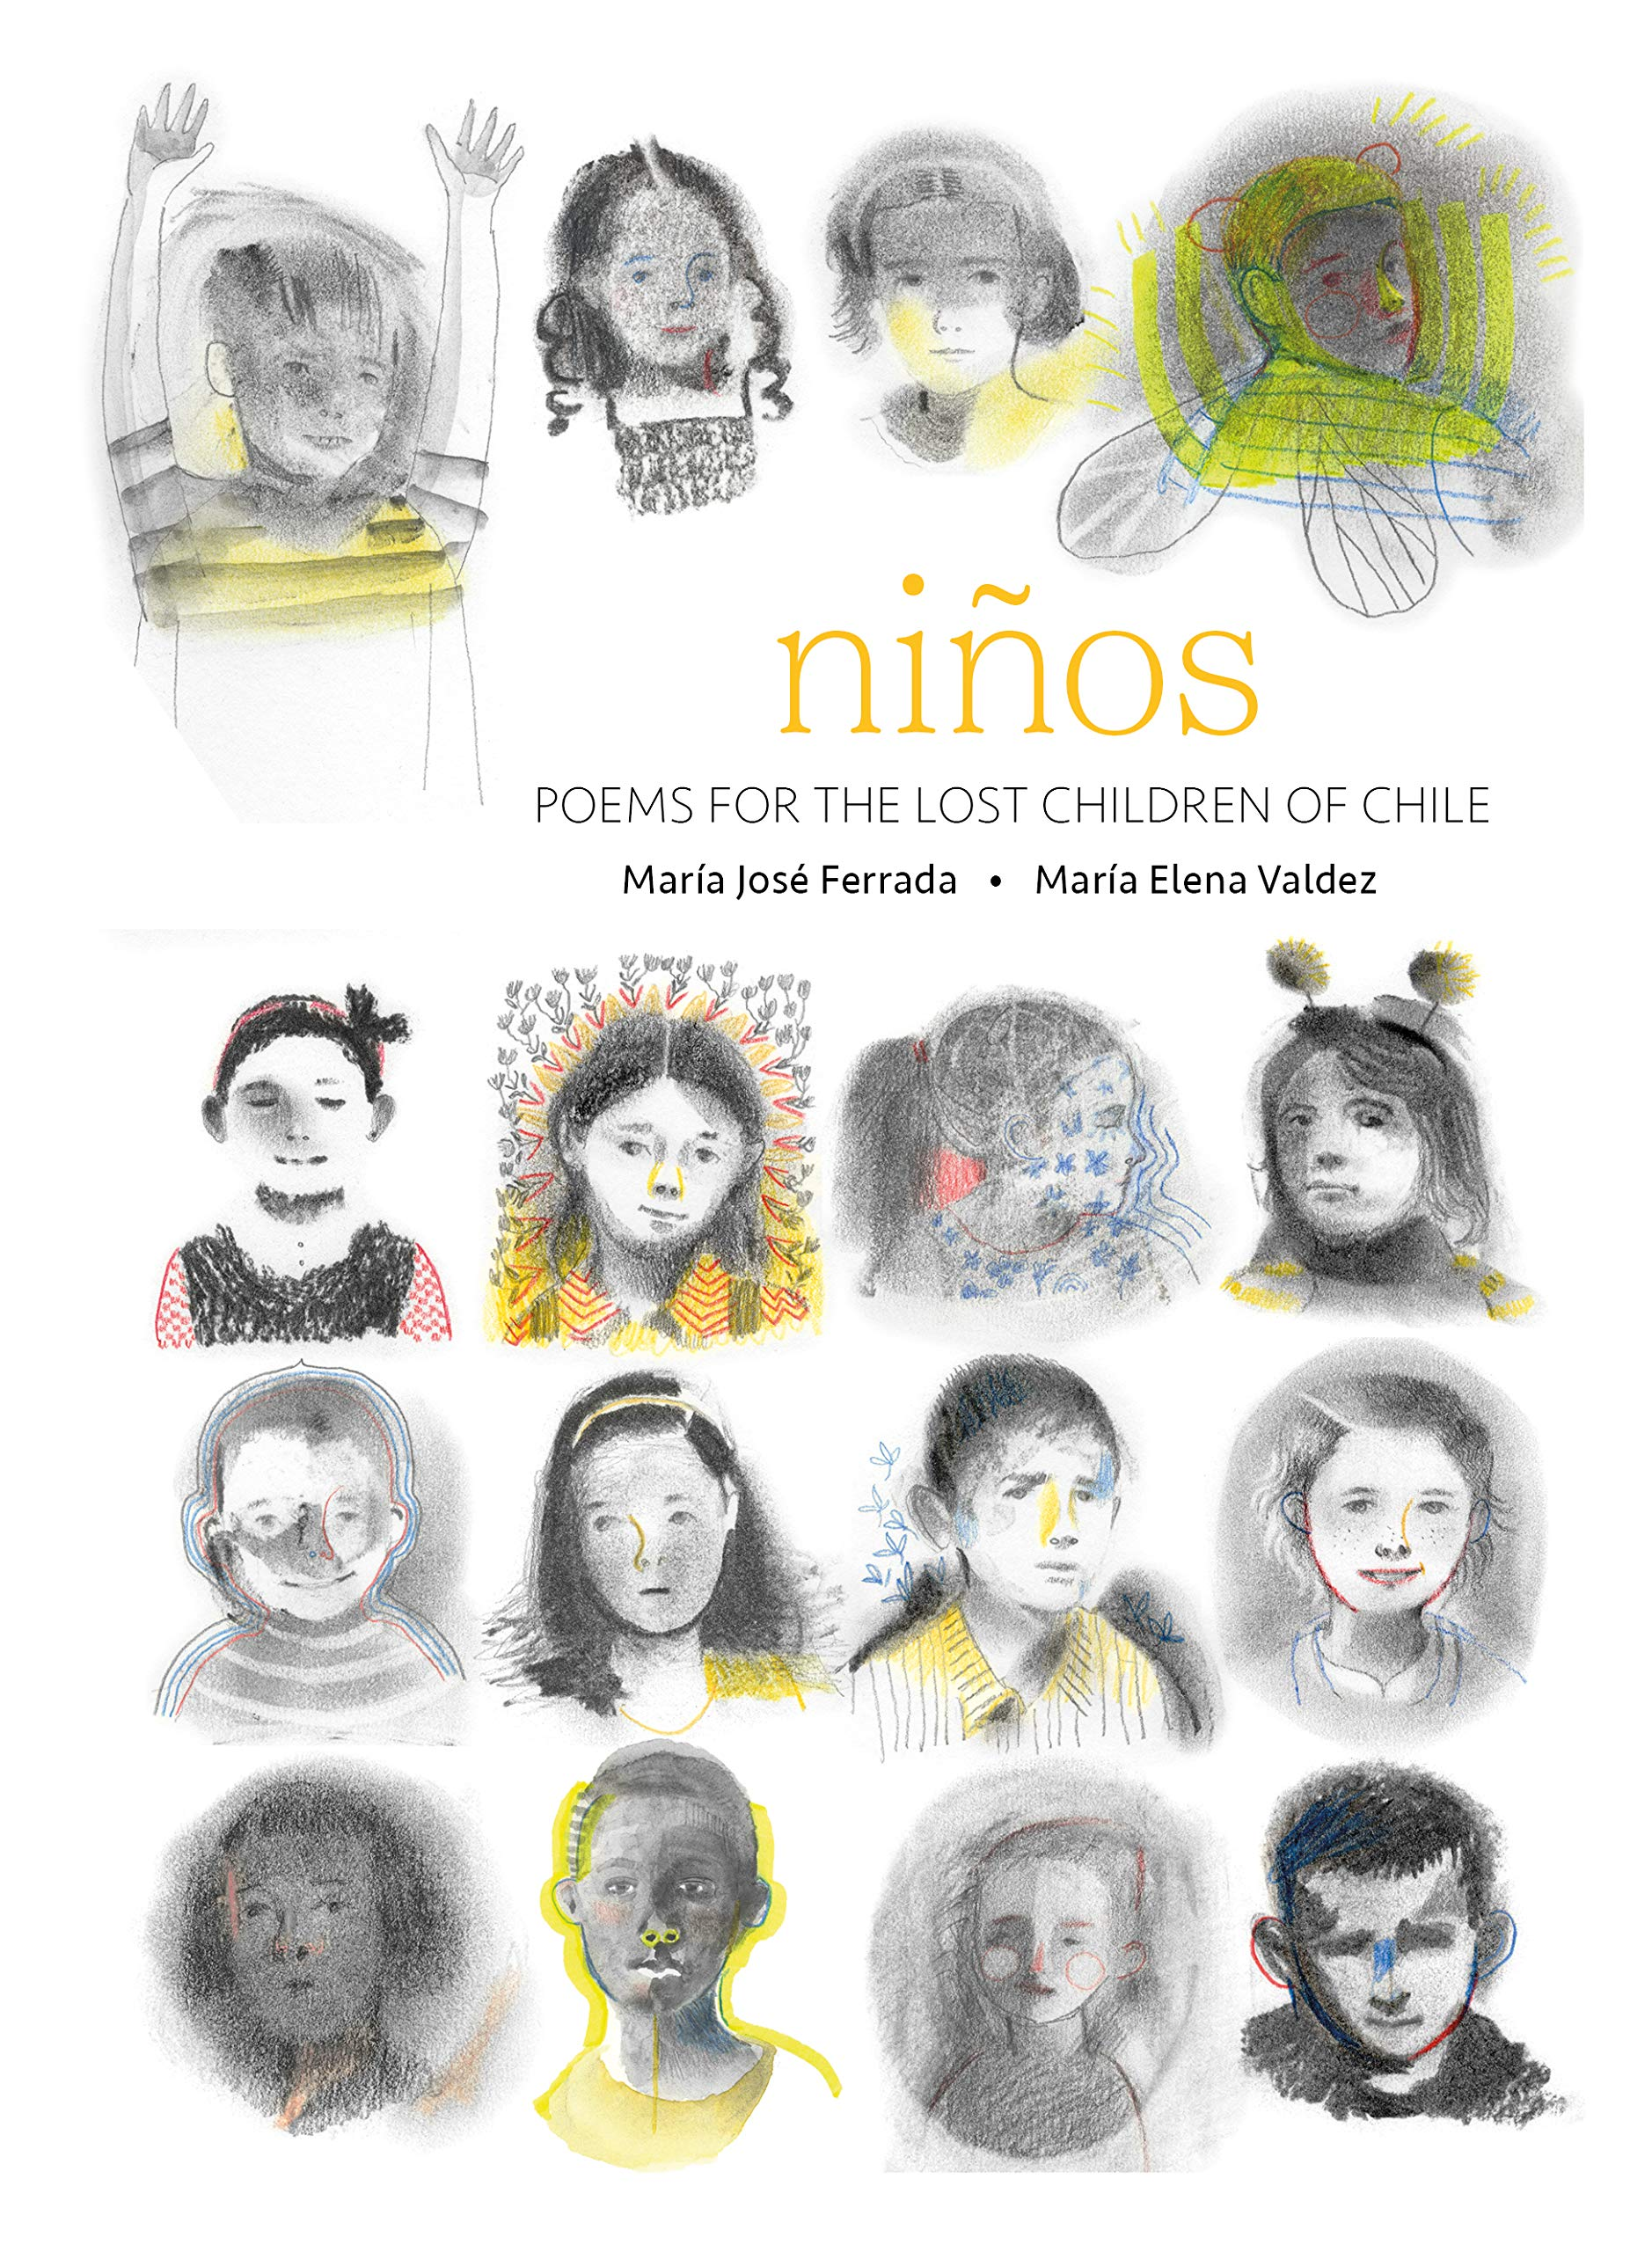 Niños: Poems for the Lost Children of Chile